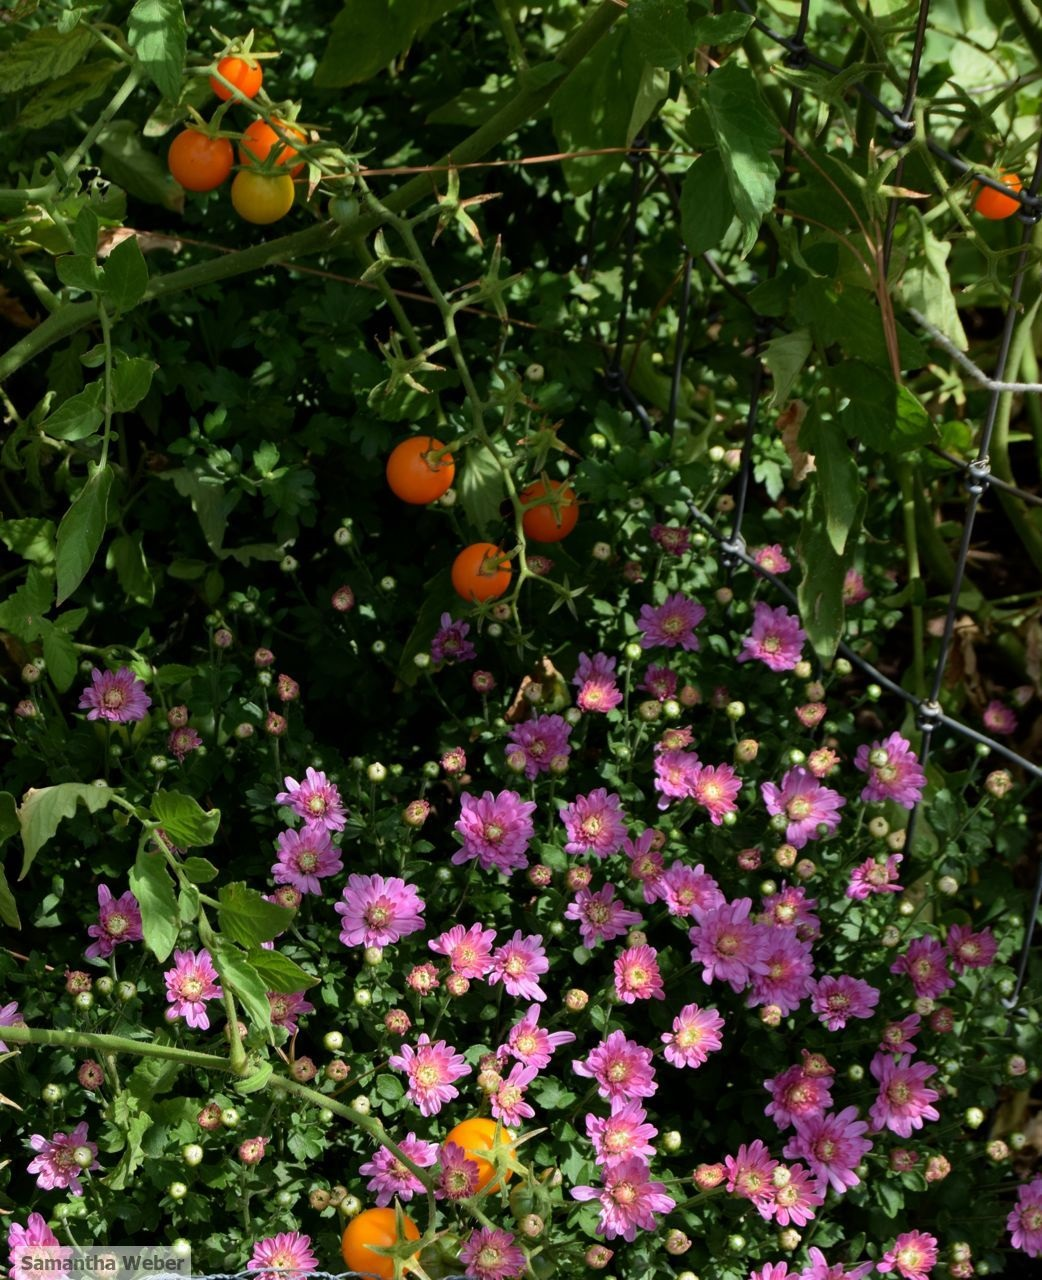 Cherry tomatoes and chrysanthemums in a merry mix. Photograph by Samantha Weber